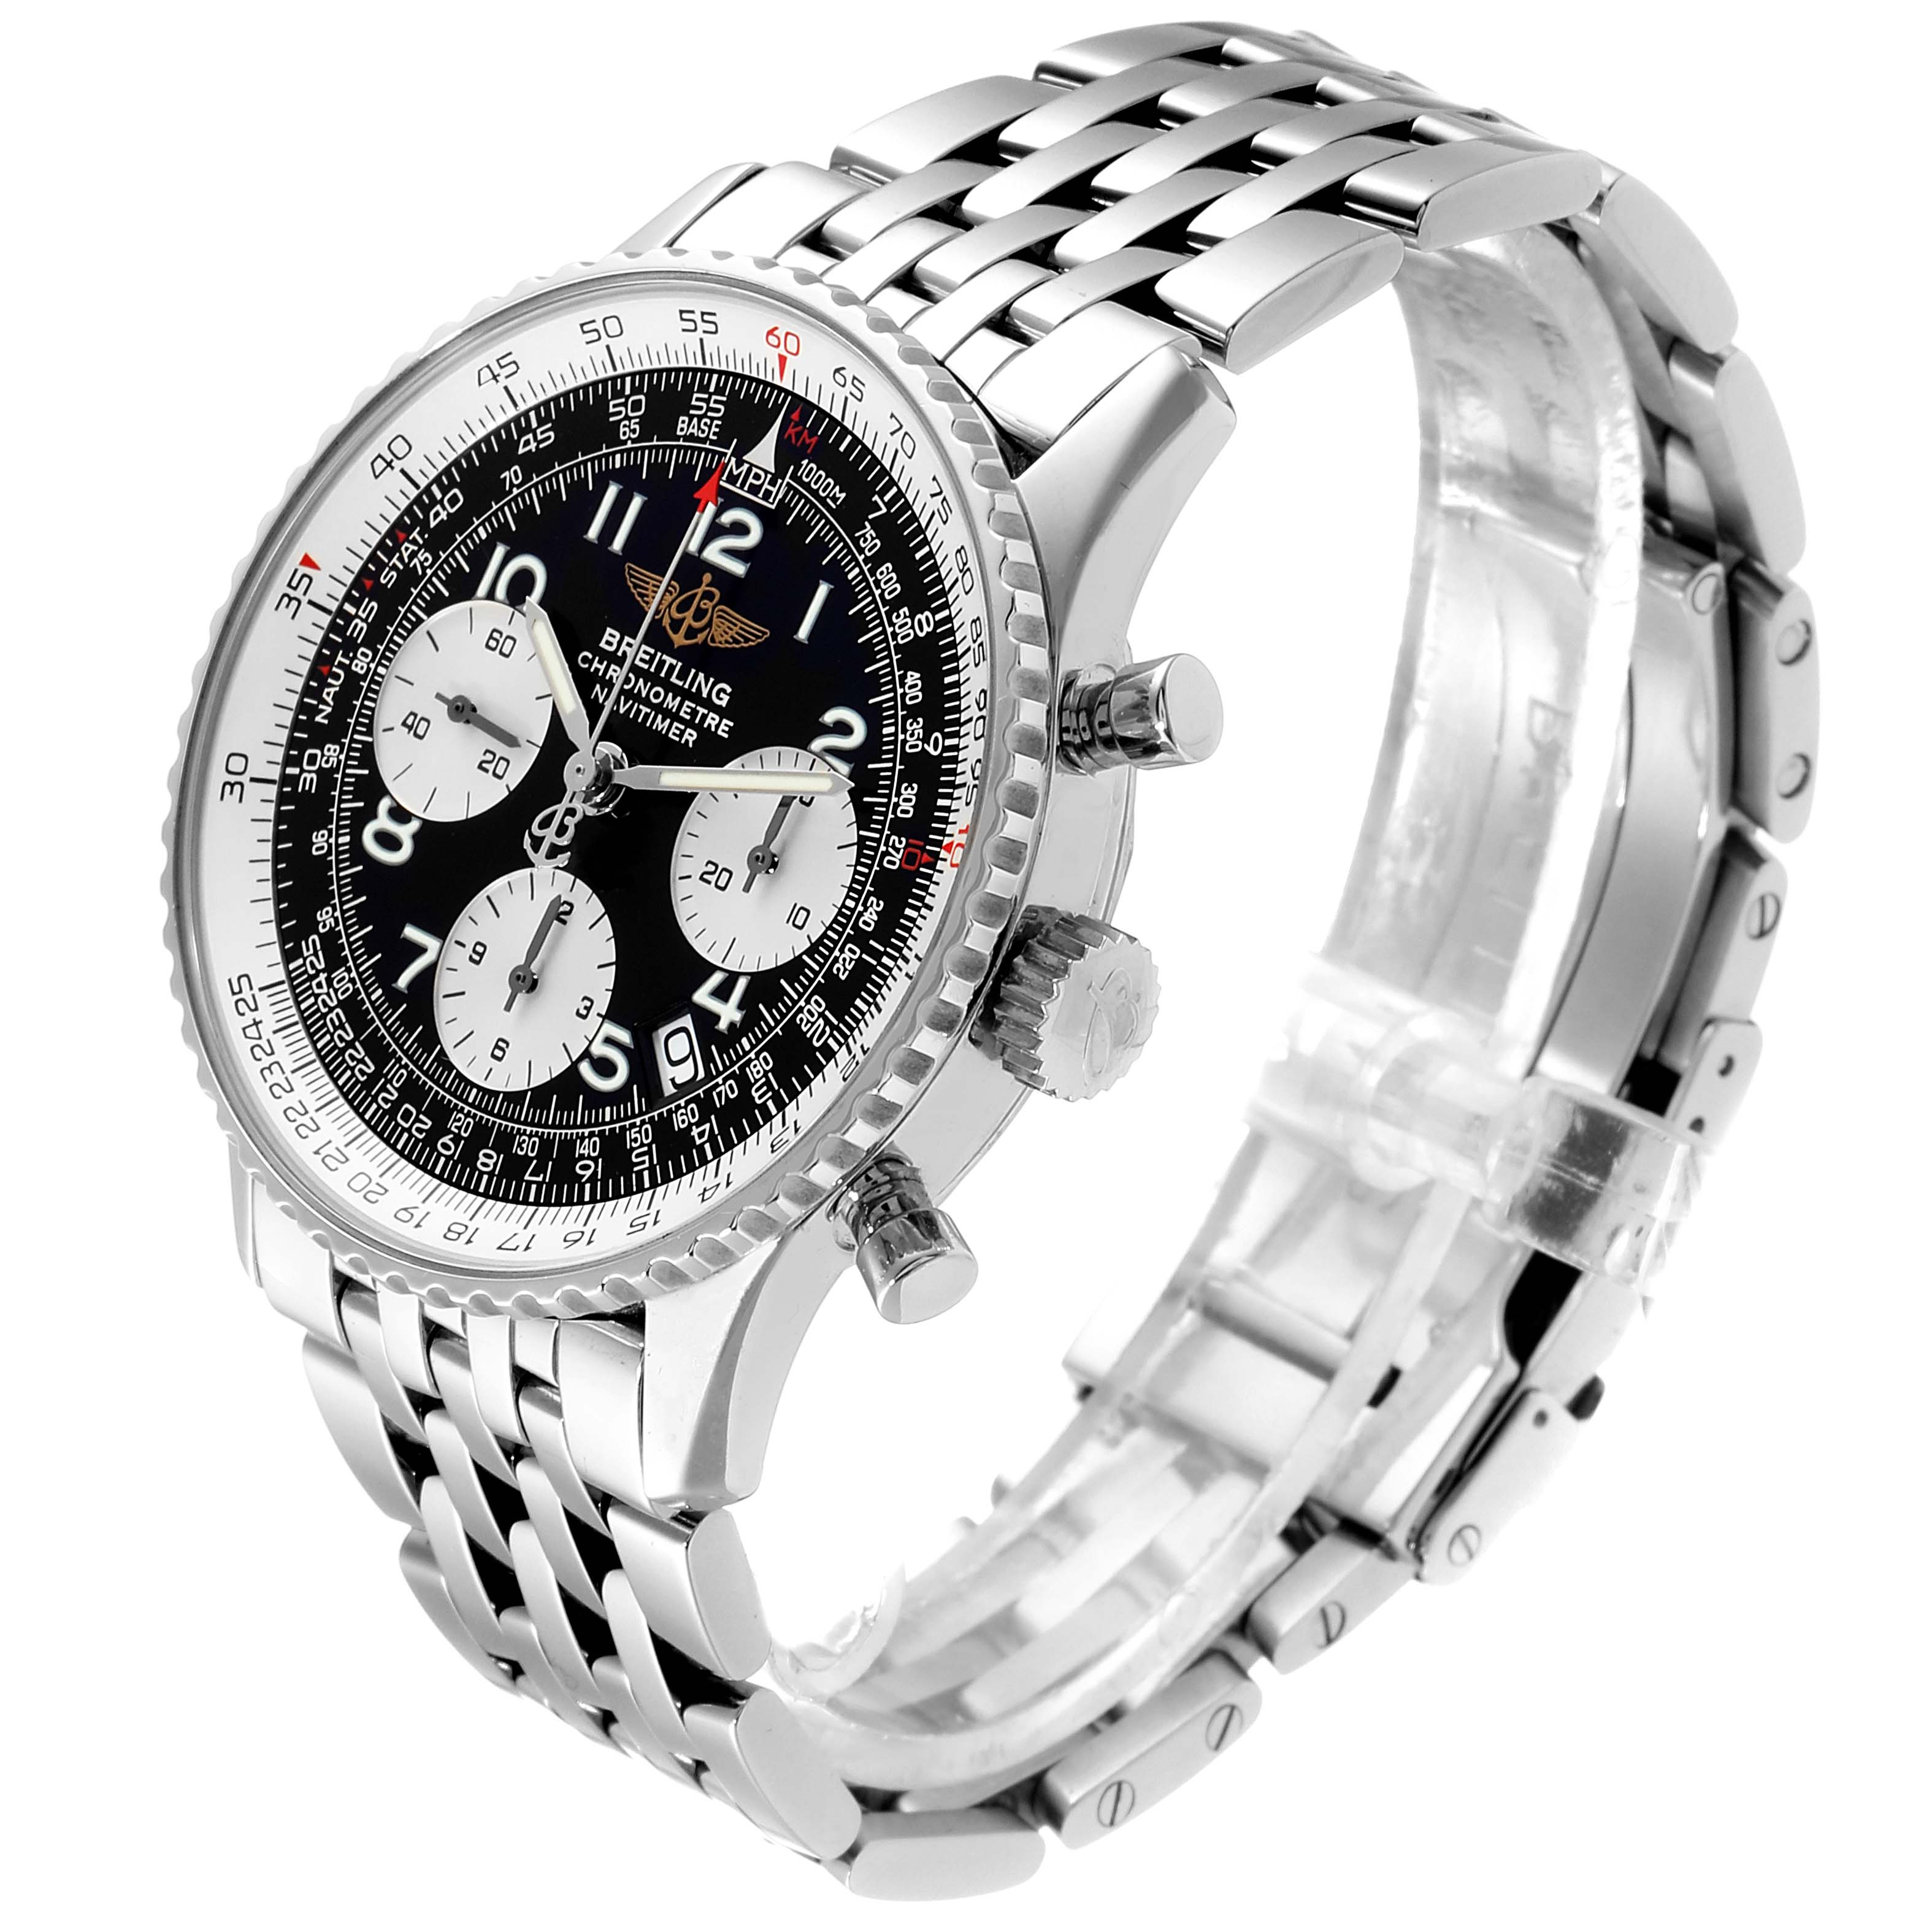 Breitling Navitimer Black Arabic Dial Steel Mens Watch A23322; 2 LINKS ADDED SwissWatchExpo